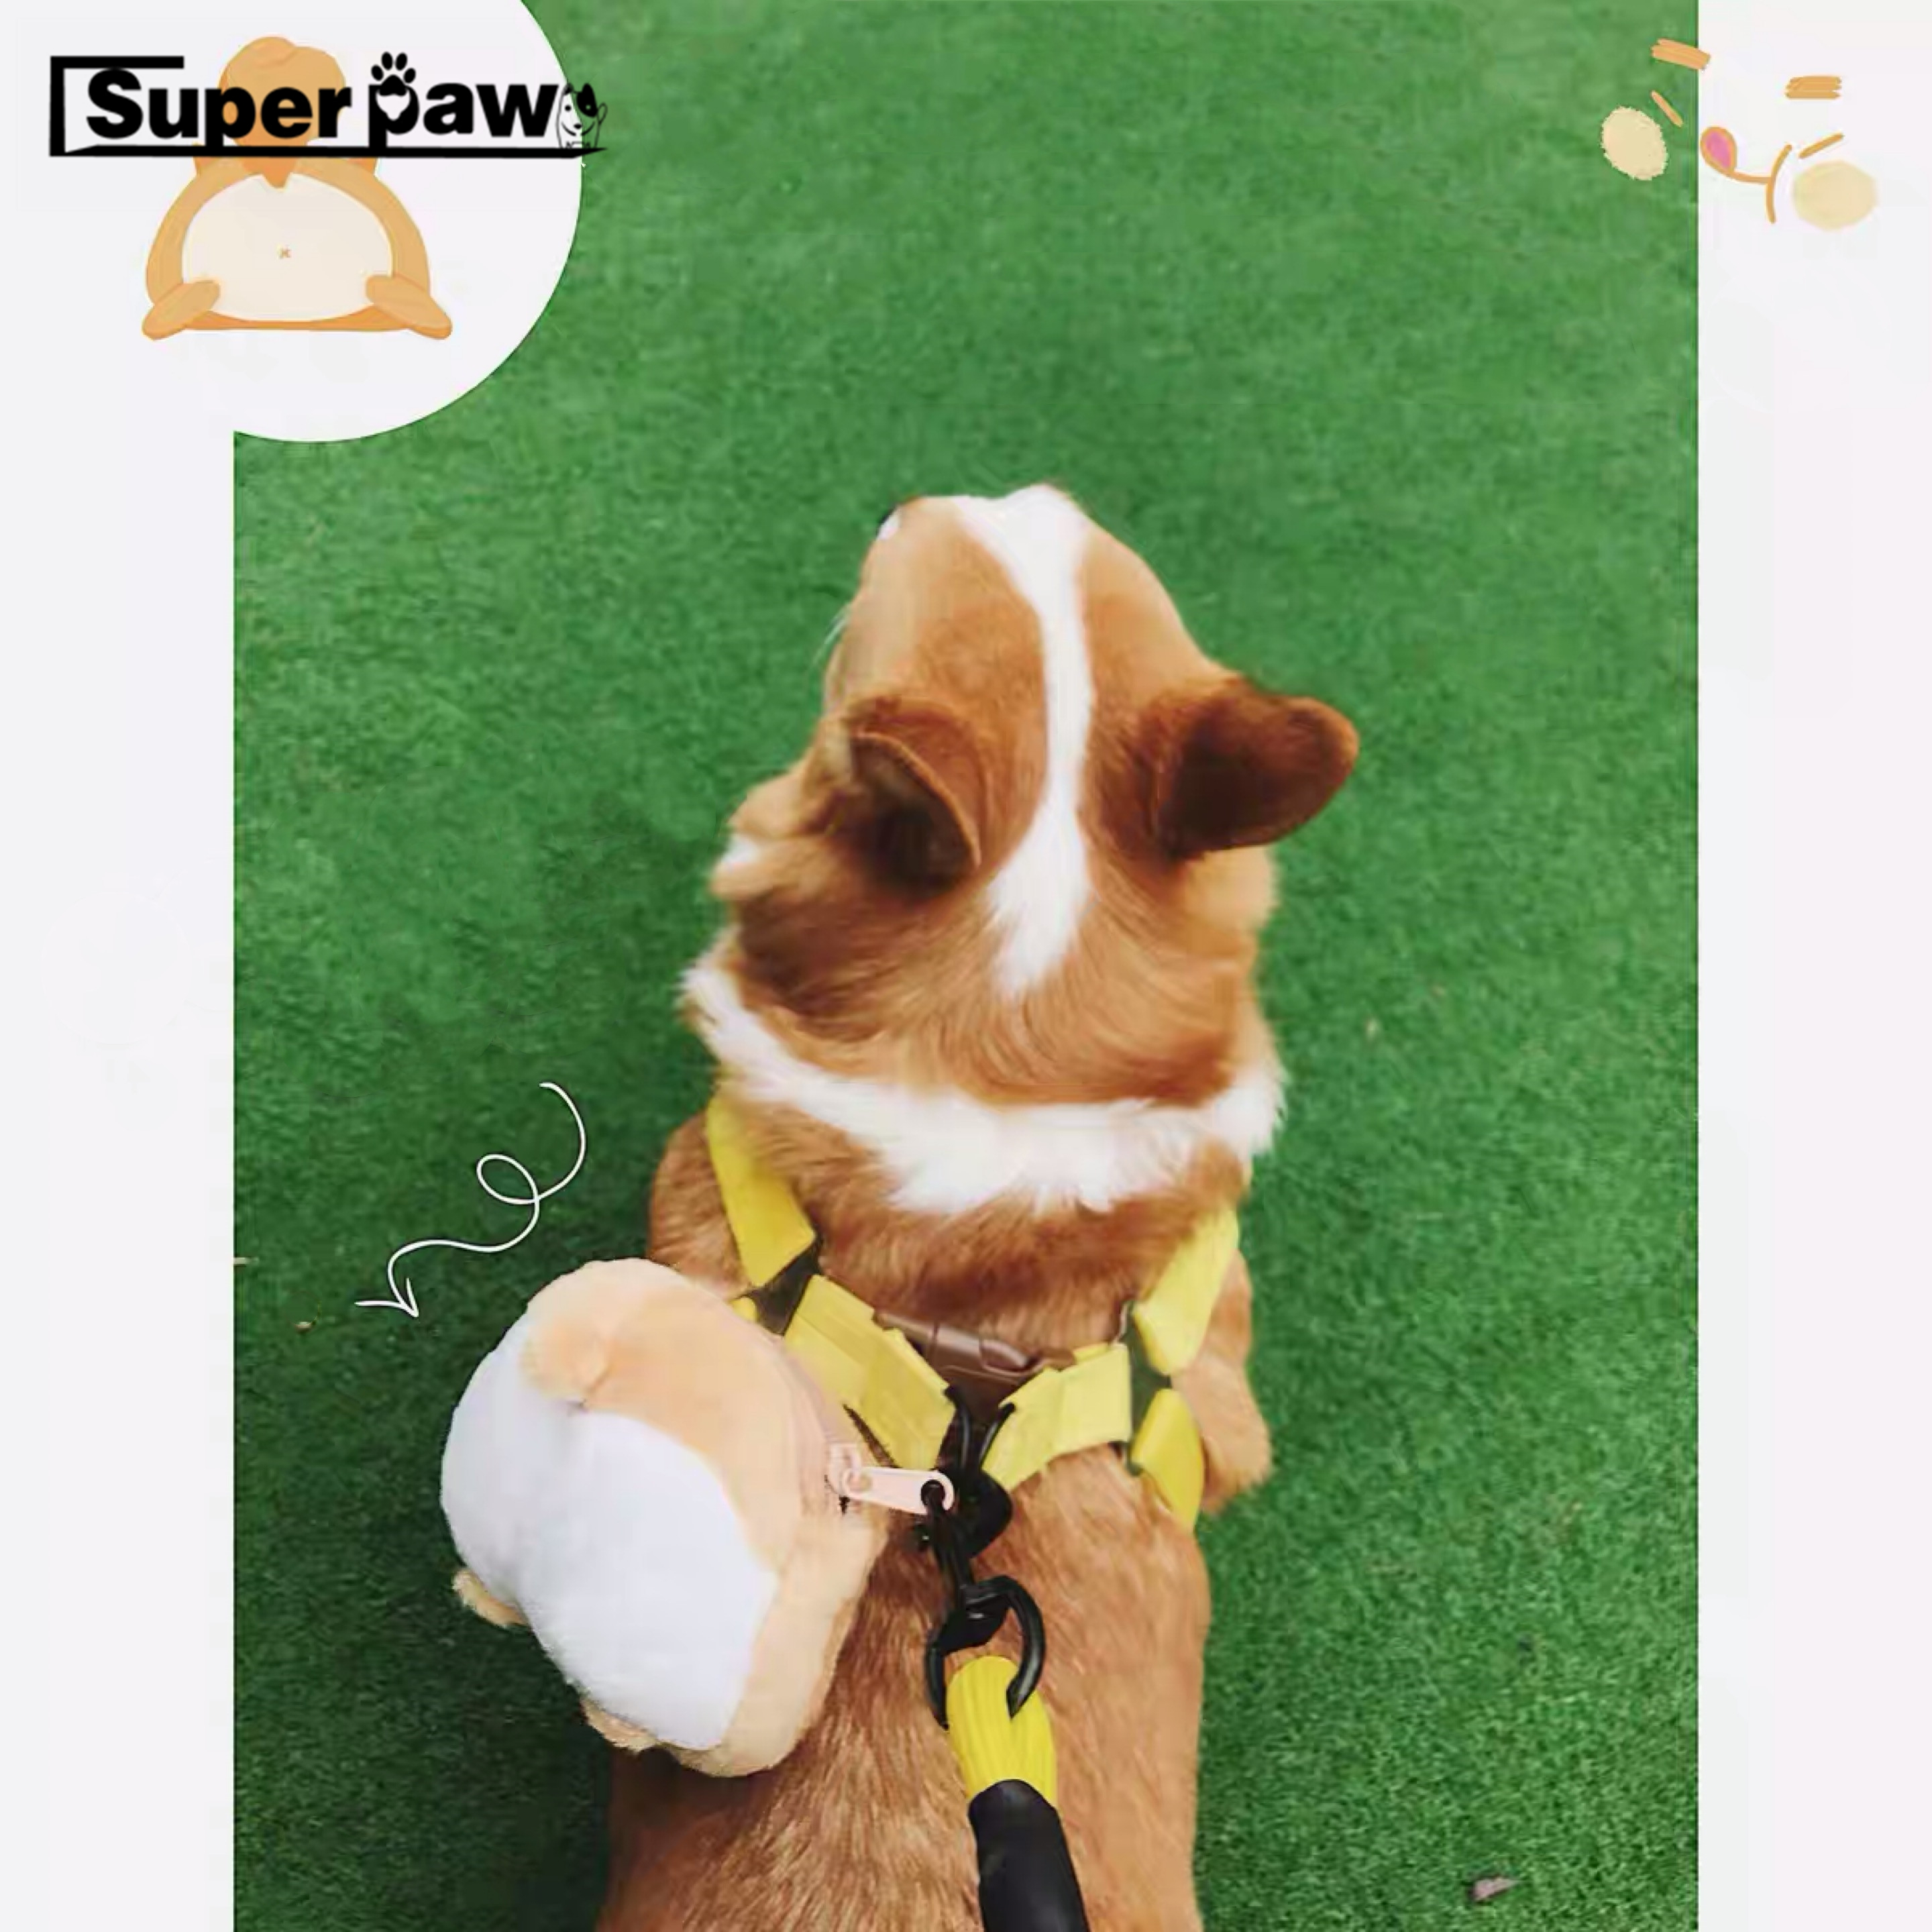 Adorable Dog little backpack Carrier New Novelty Pet Backpack Adjustable Cute Corgi Butt Pocket For Puppy Small Dogs GZB01